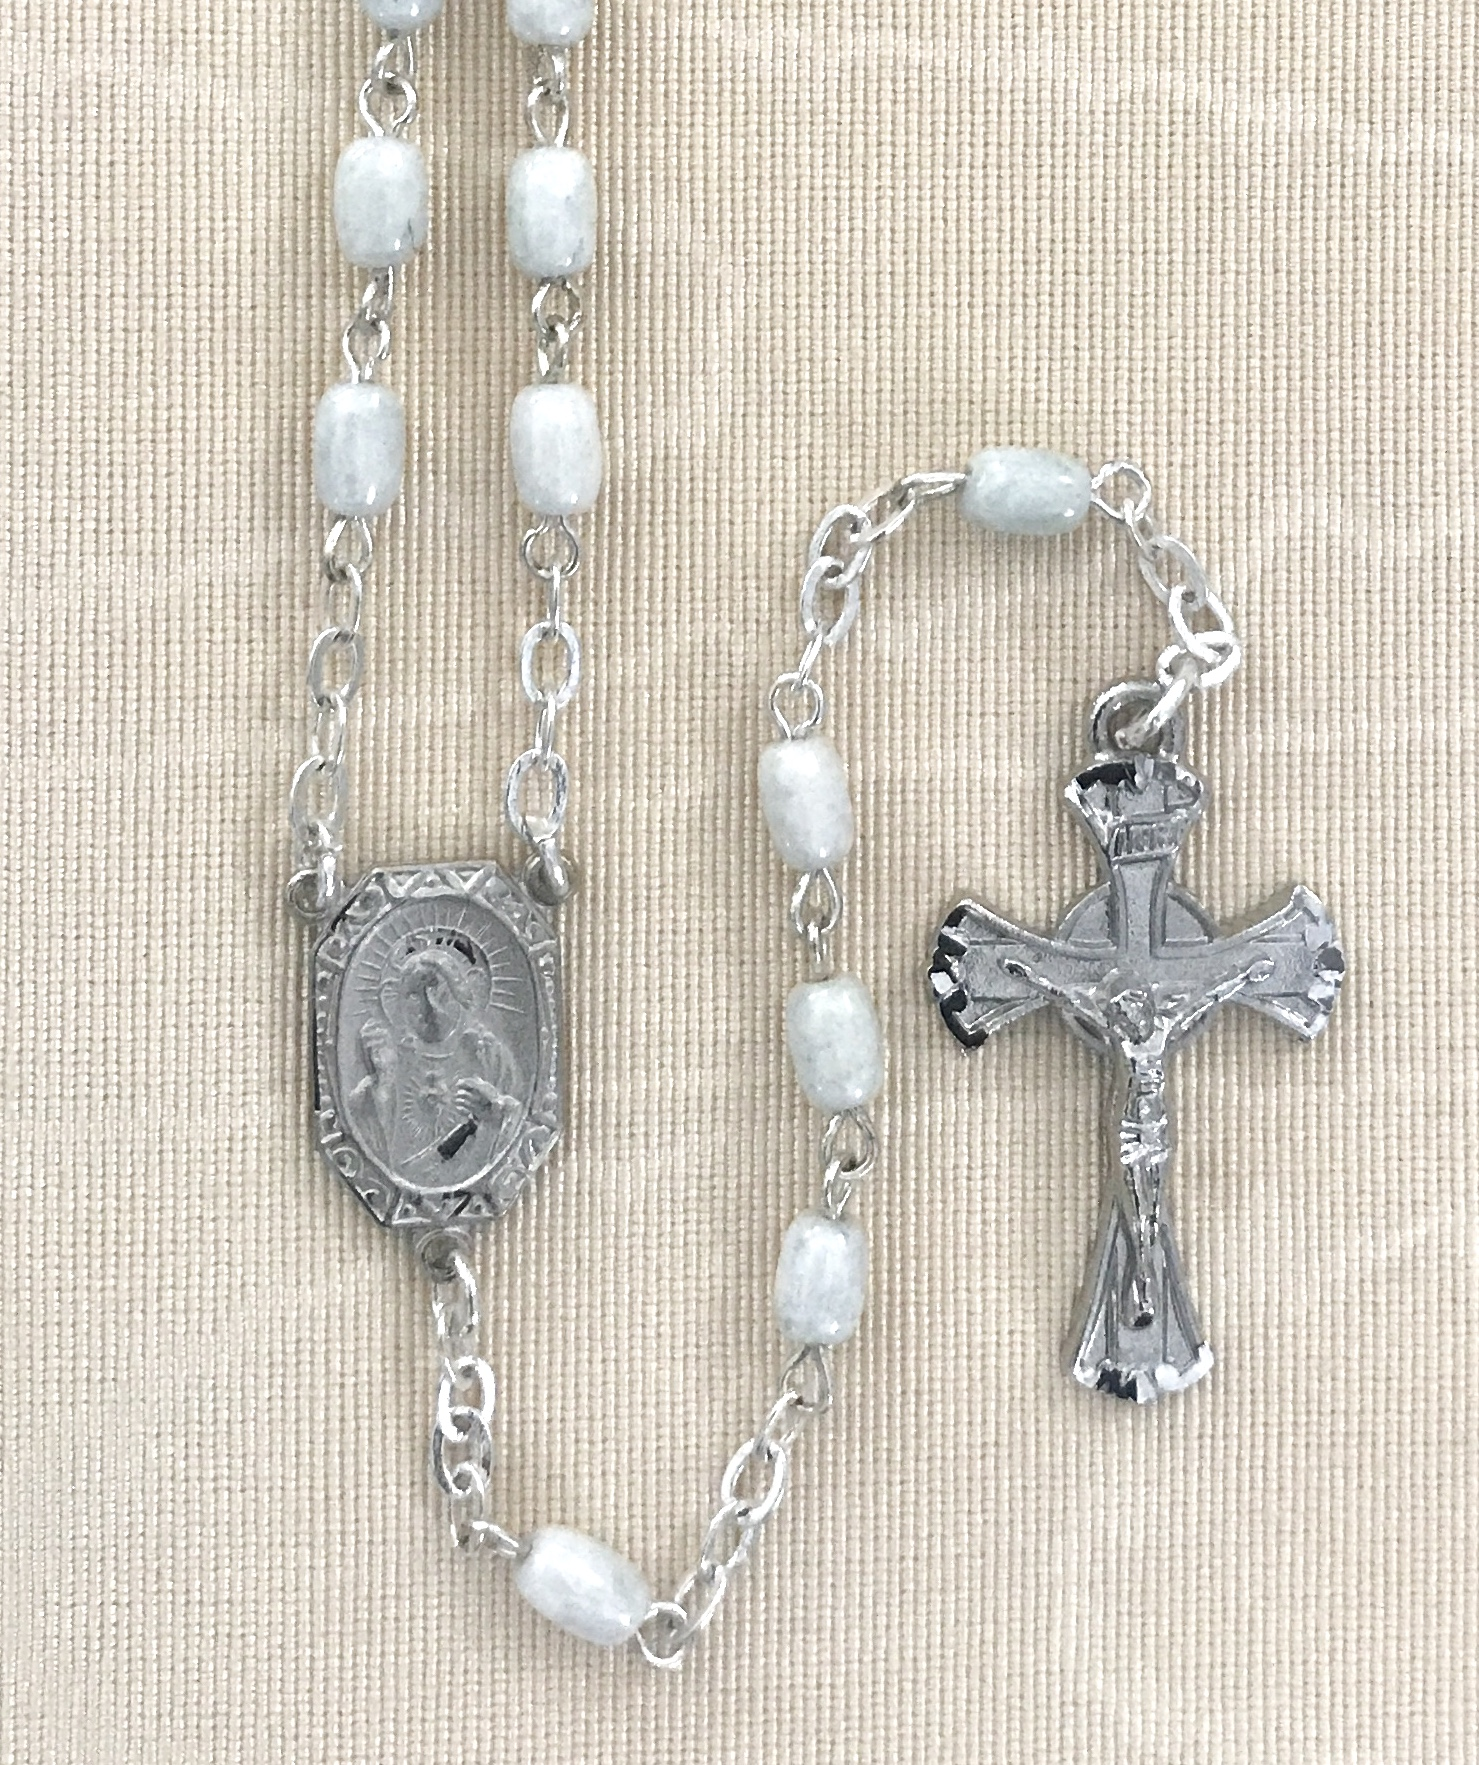 4x6 WHITE MARBLE ROSARY WITH STERLING SILVER PLATED CRUCIFIX AND CENTER GIFT BOXED